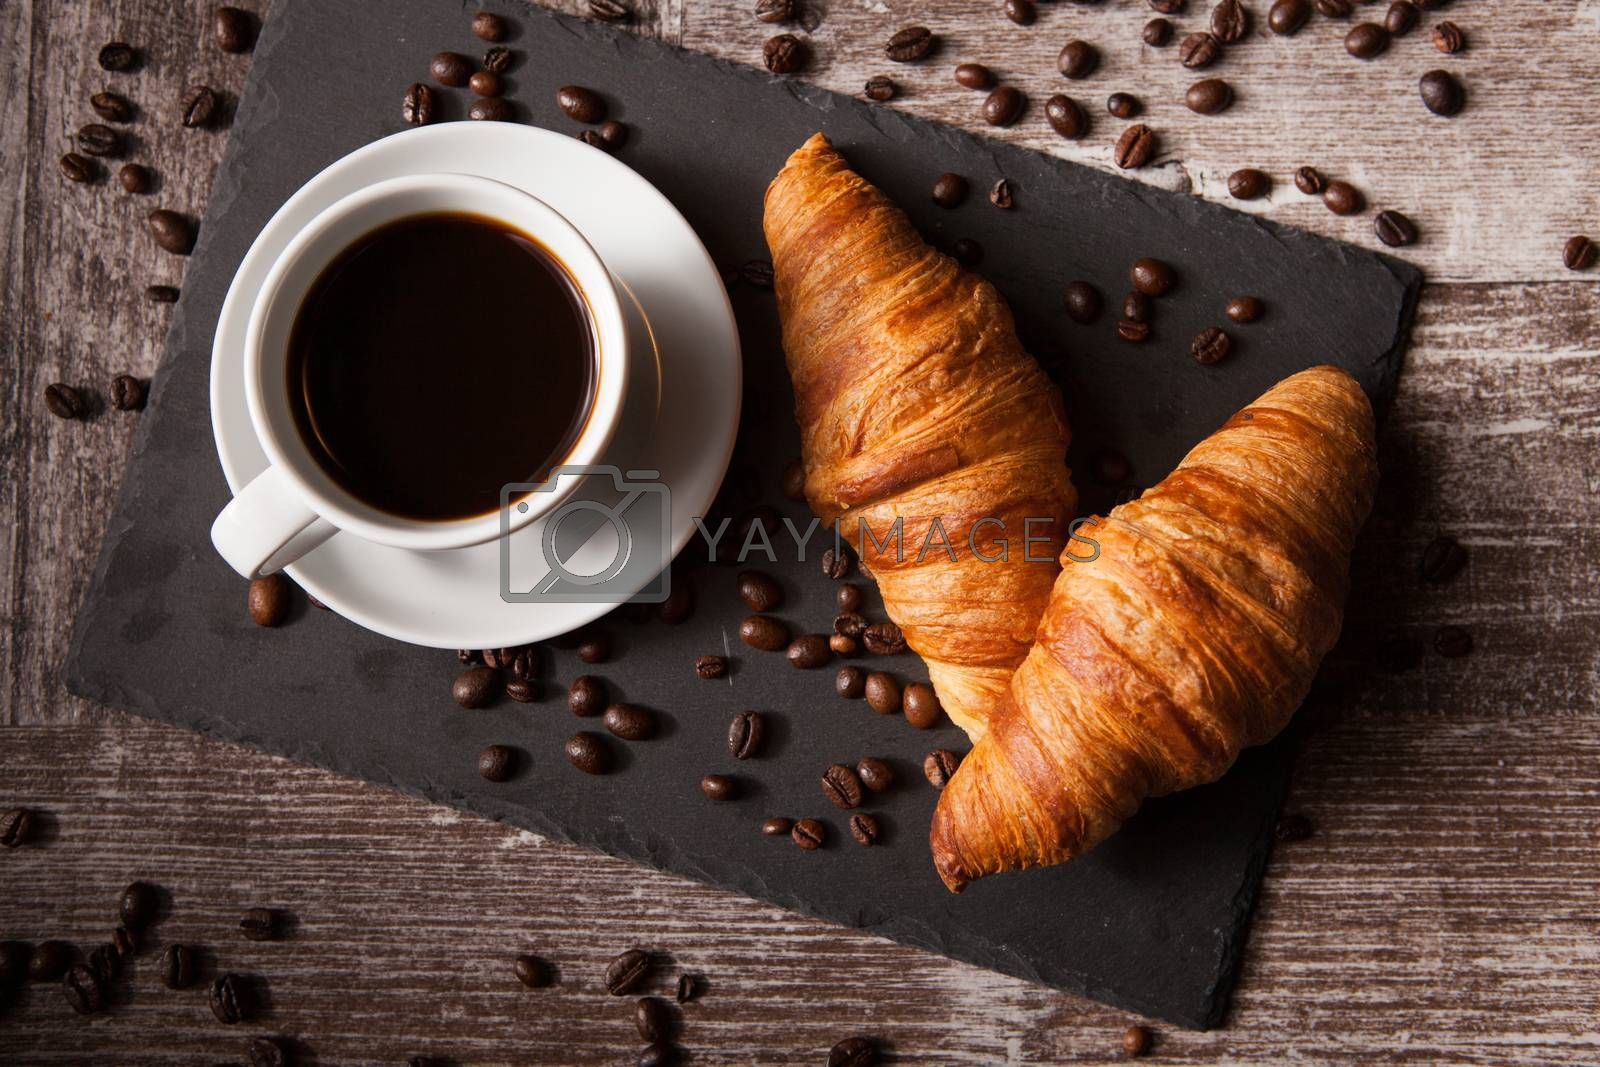 Croissant and cup of hot coffee on dark wooden table by DCStudio